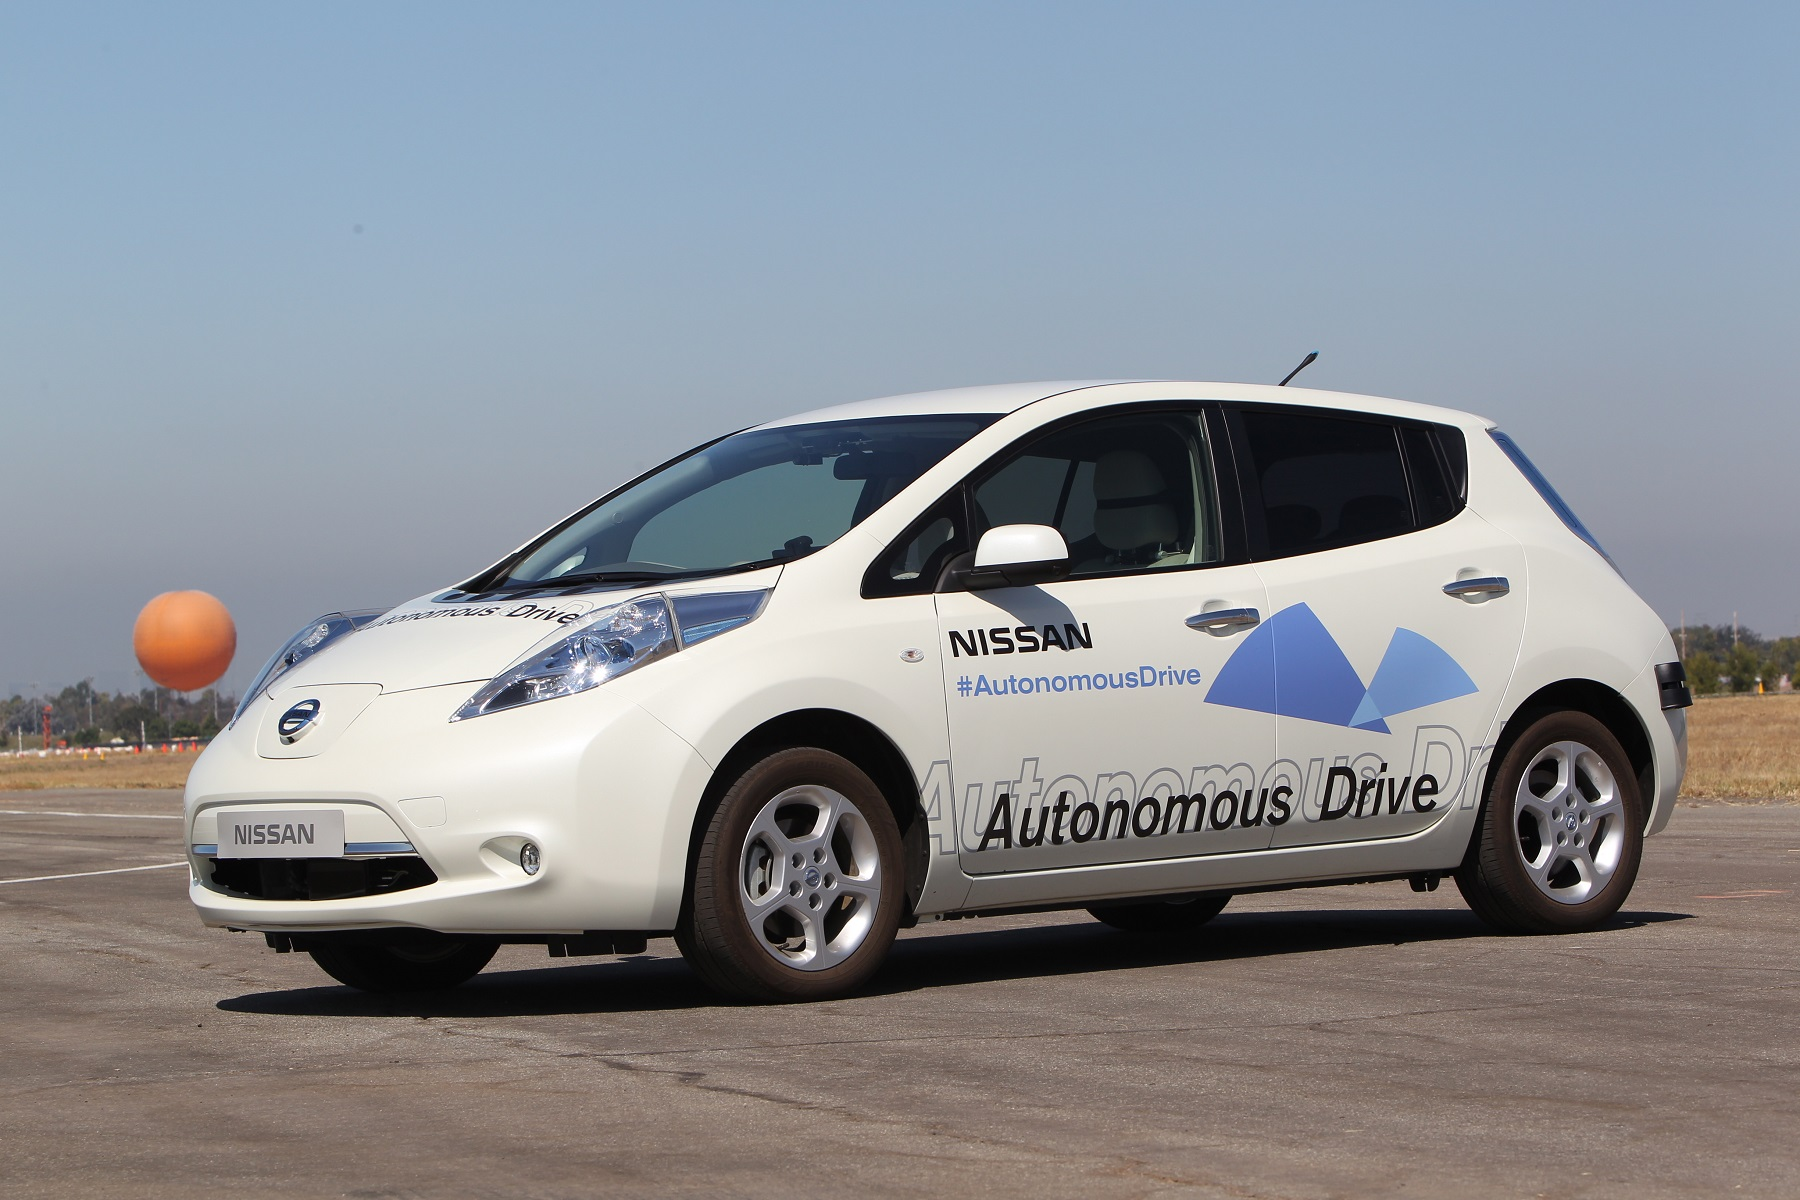 Manufacturer photo: Nissan is working with top universities, including MIT, on collaborative R&D